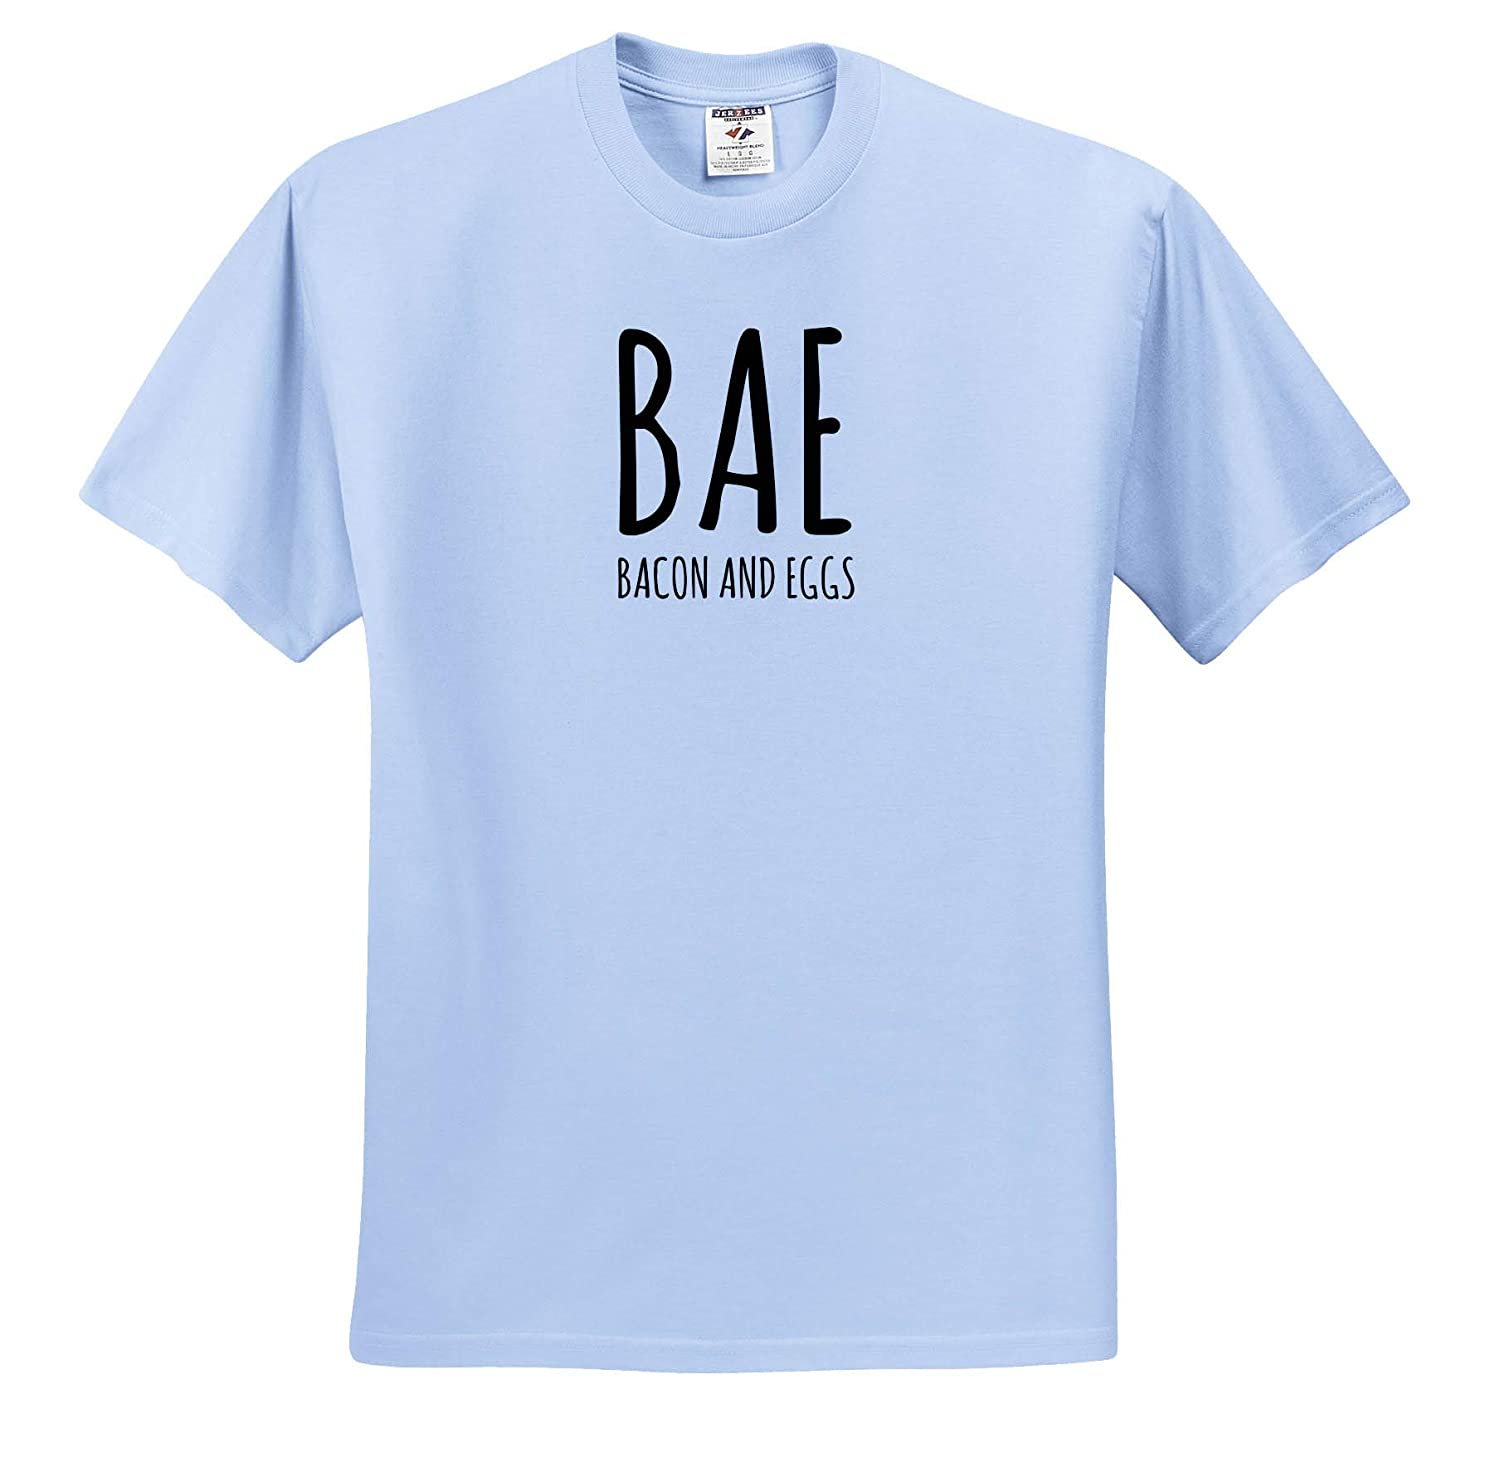 Quote T-Shirts 3dRose Gabriella B Image of BAE Bacon and Eggs Quote